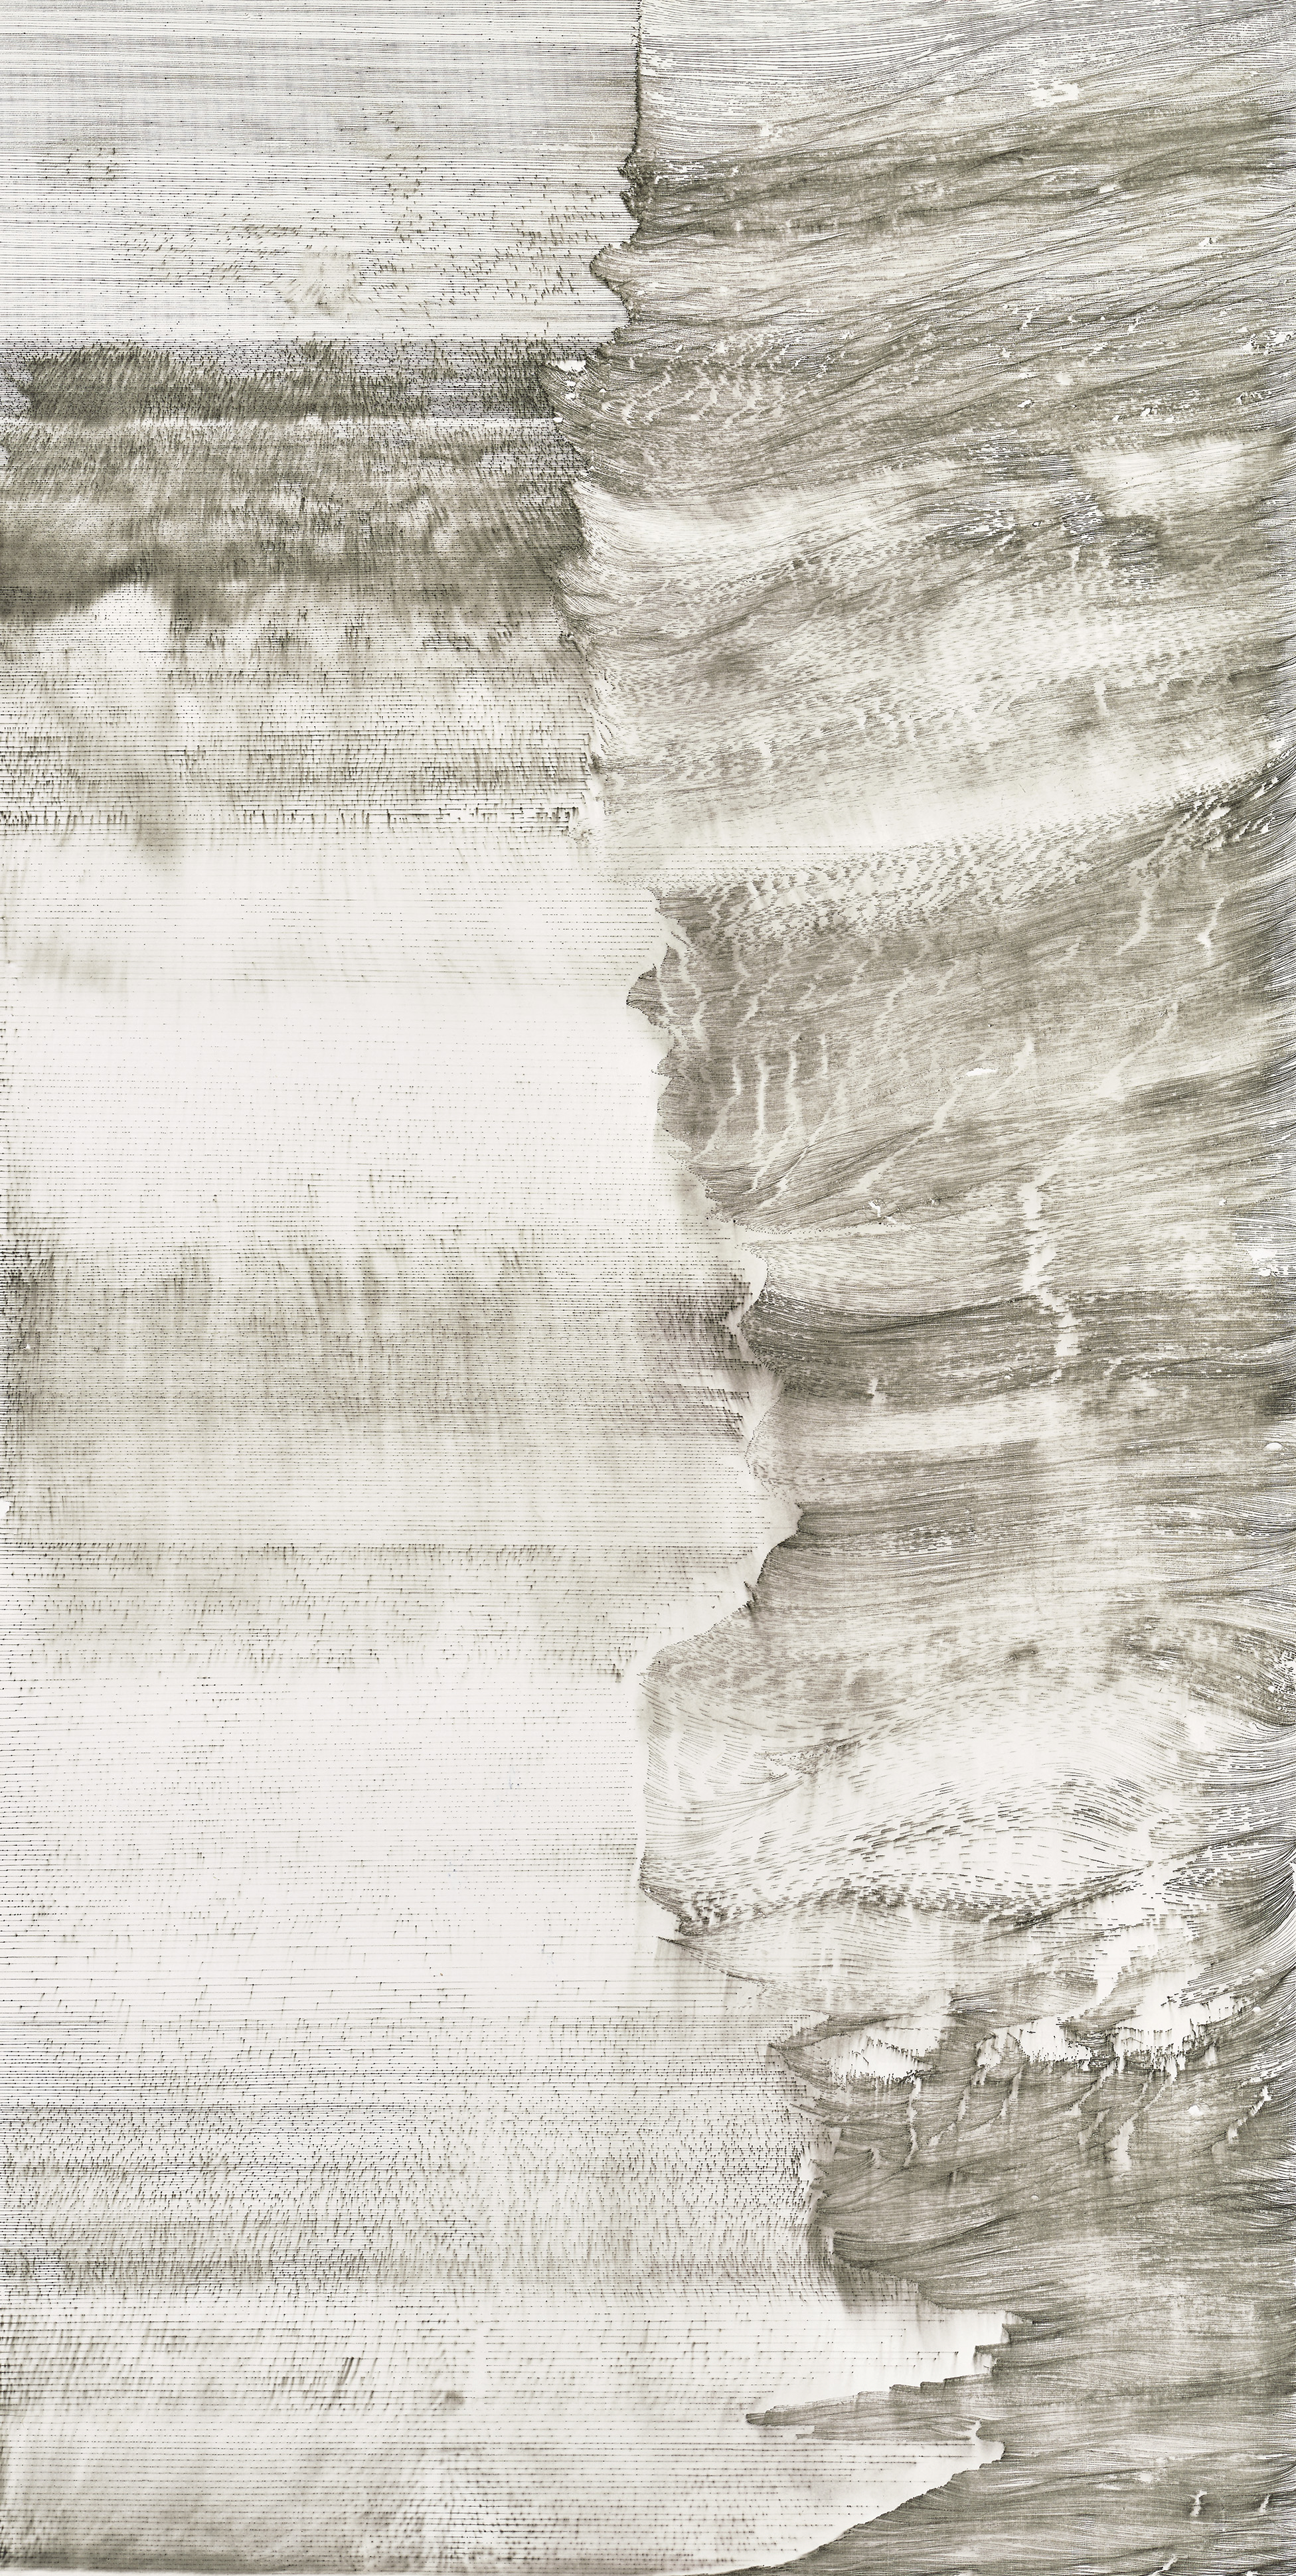 Hung Fai and Wai Pong Yu, Same Line Twice 2 (i), 70 cm (width) x 138.5 cm (height), pigmented ink on paper, 2016